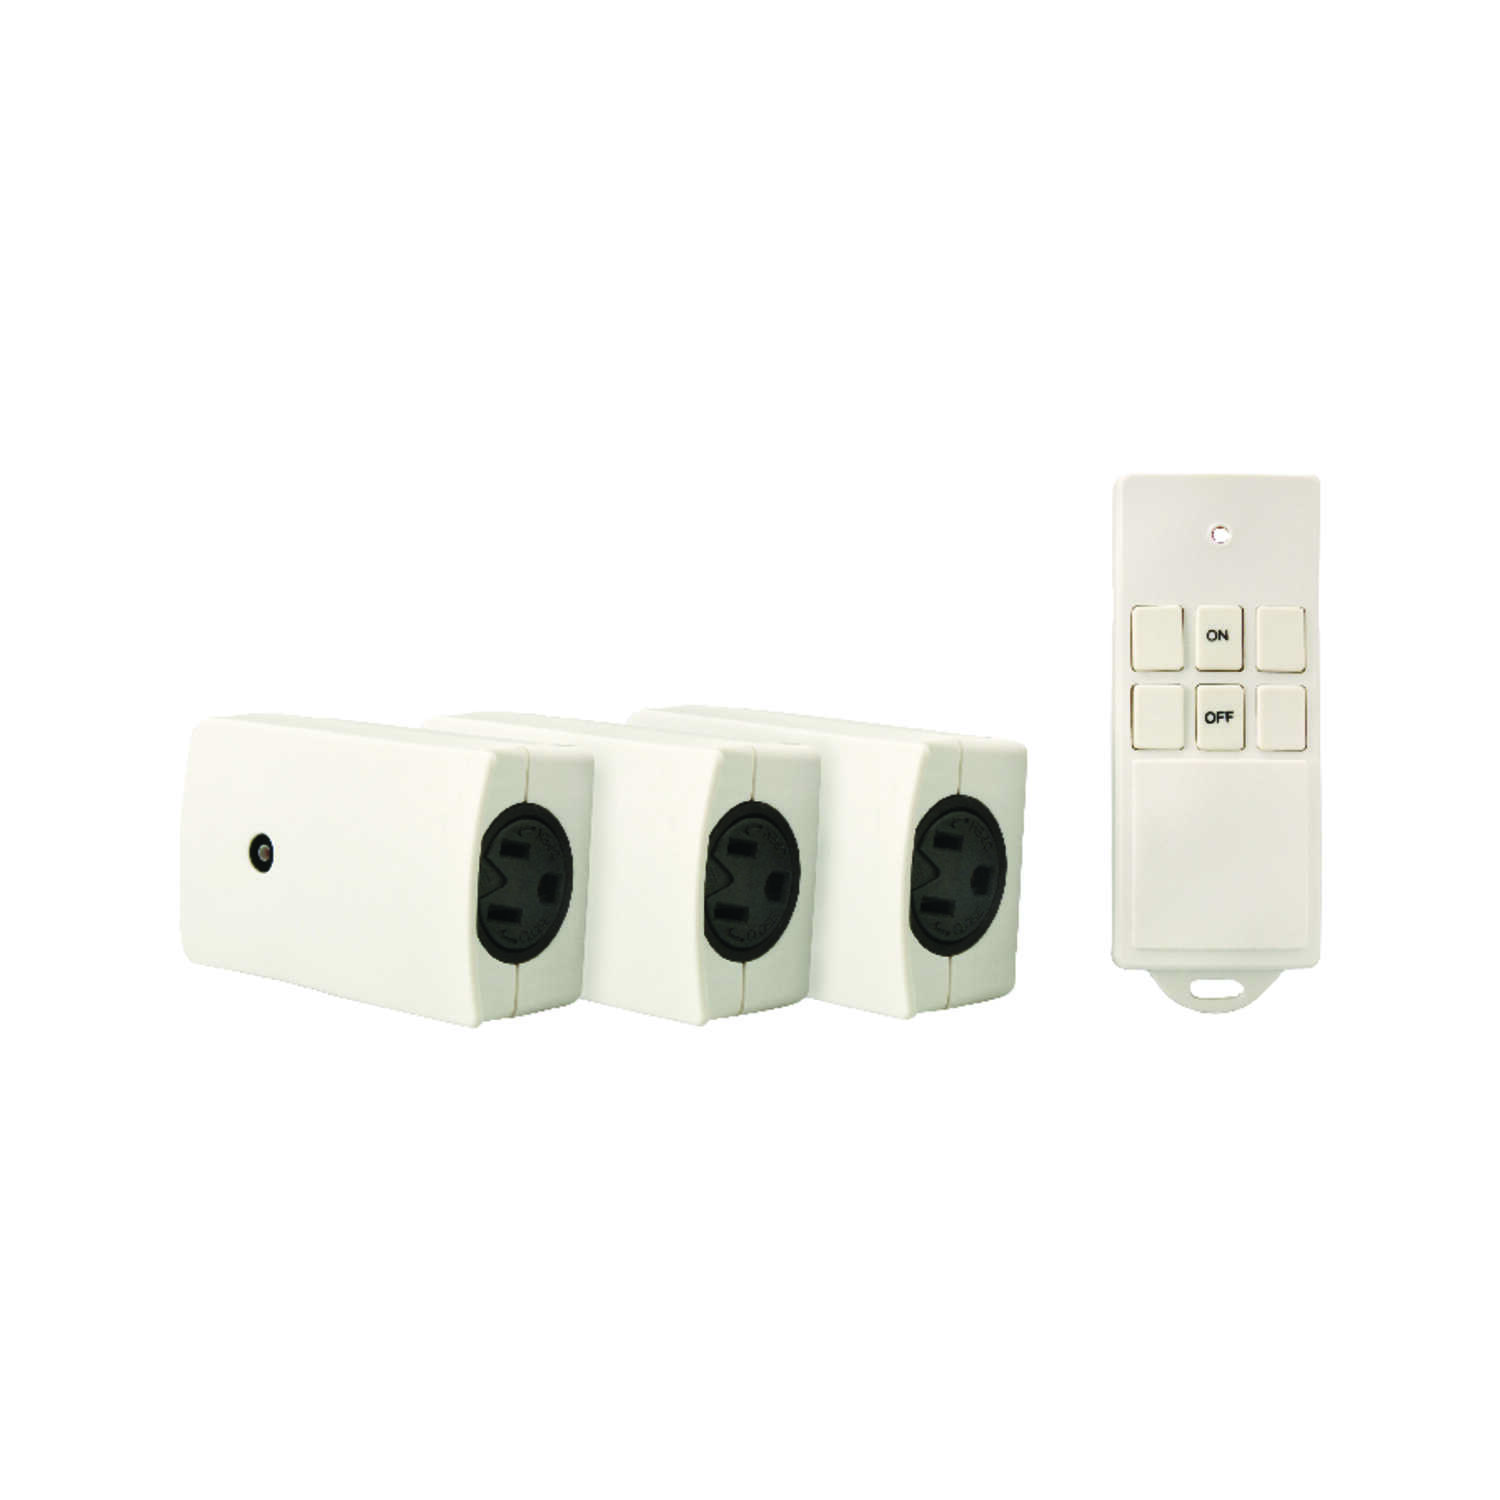 Woods  Wireless  Appliance Switch  White  3 pk